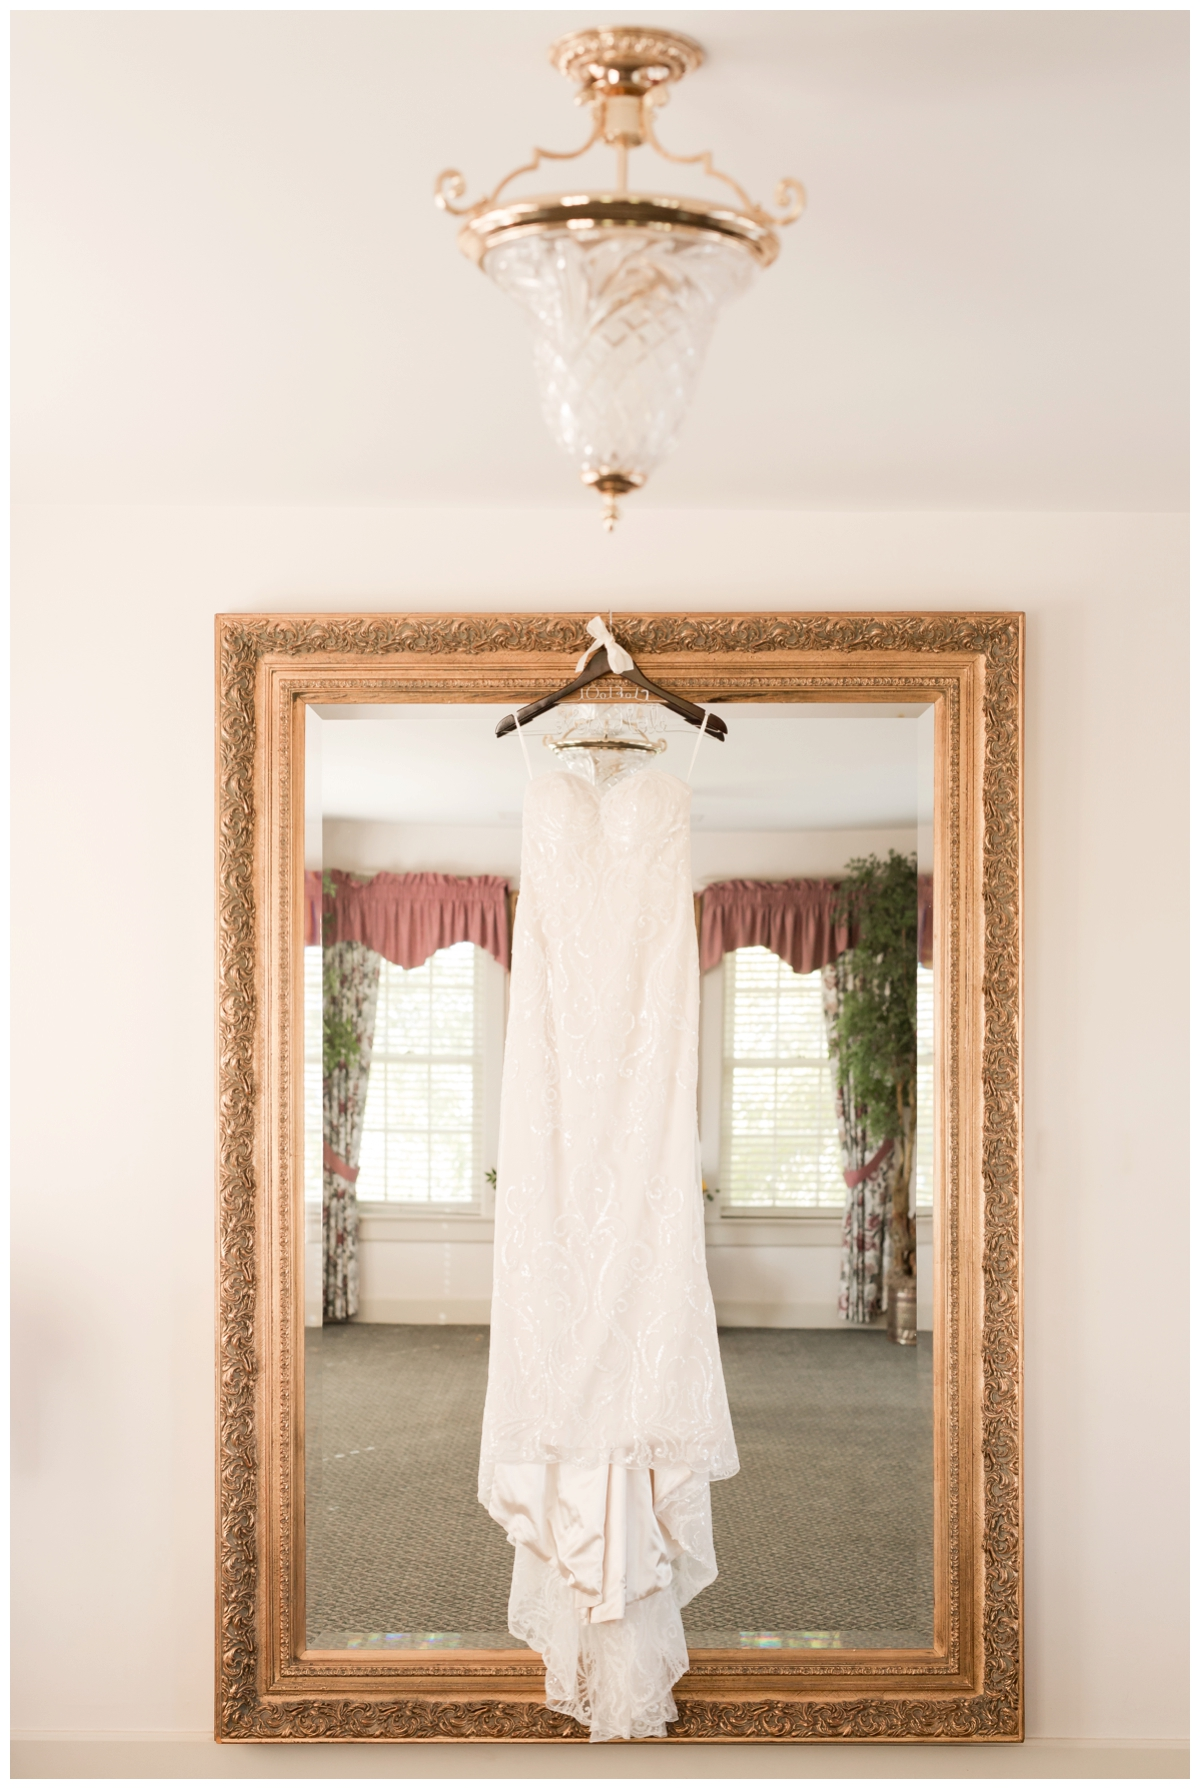 Bride's wedding dress hanging on a mirror with lace details